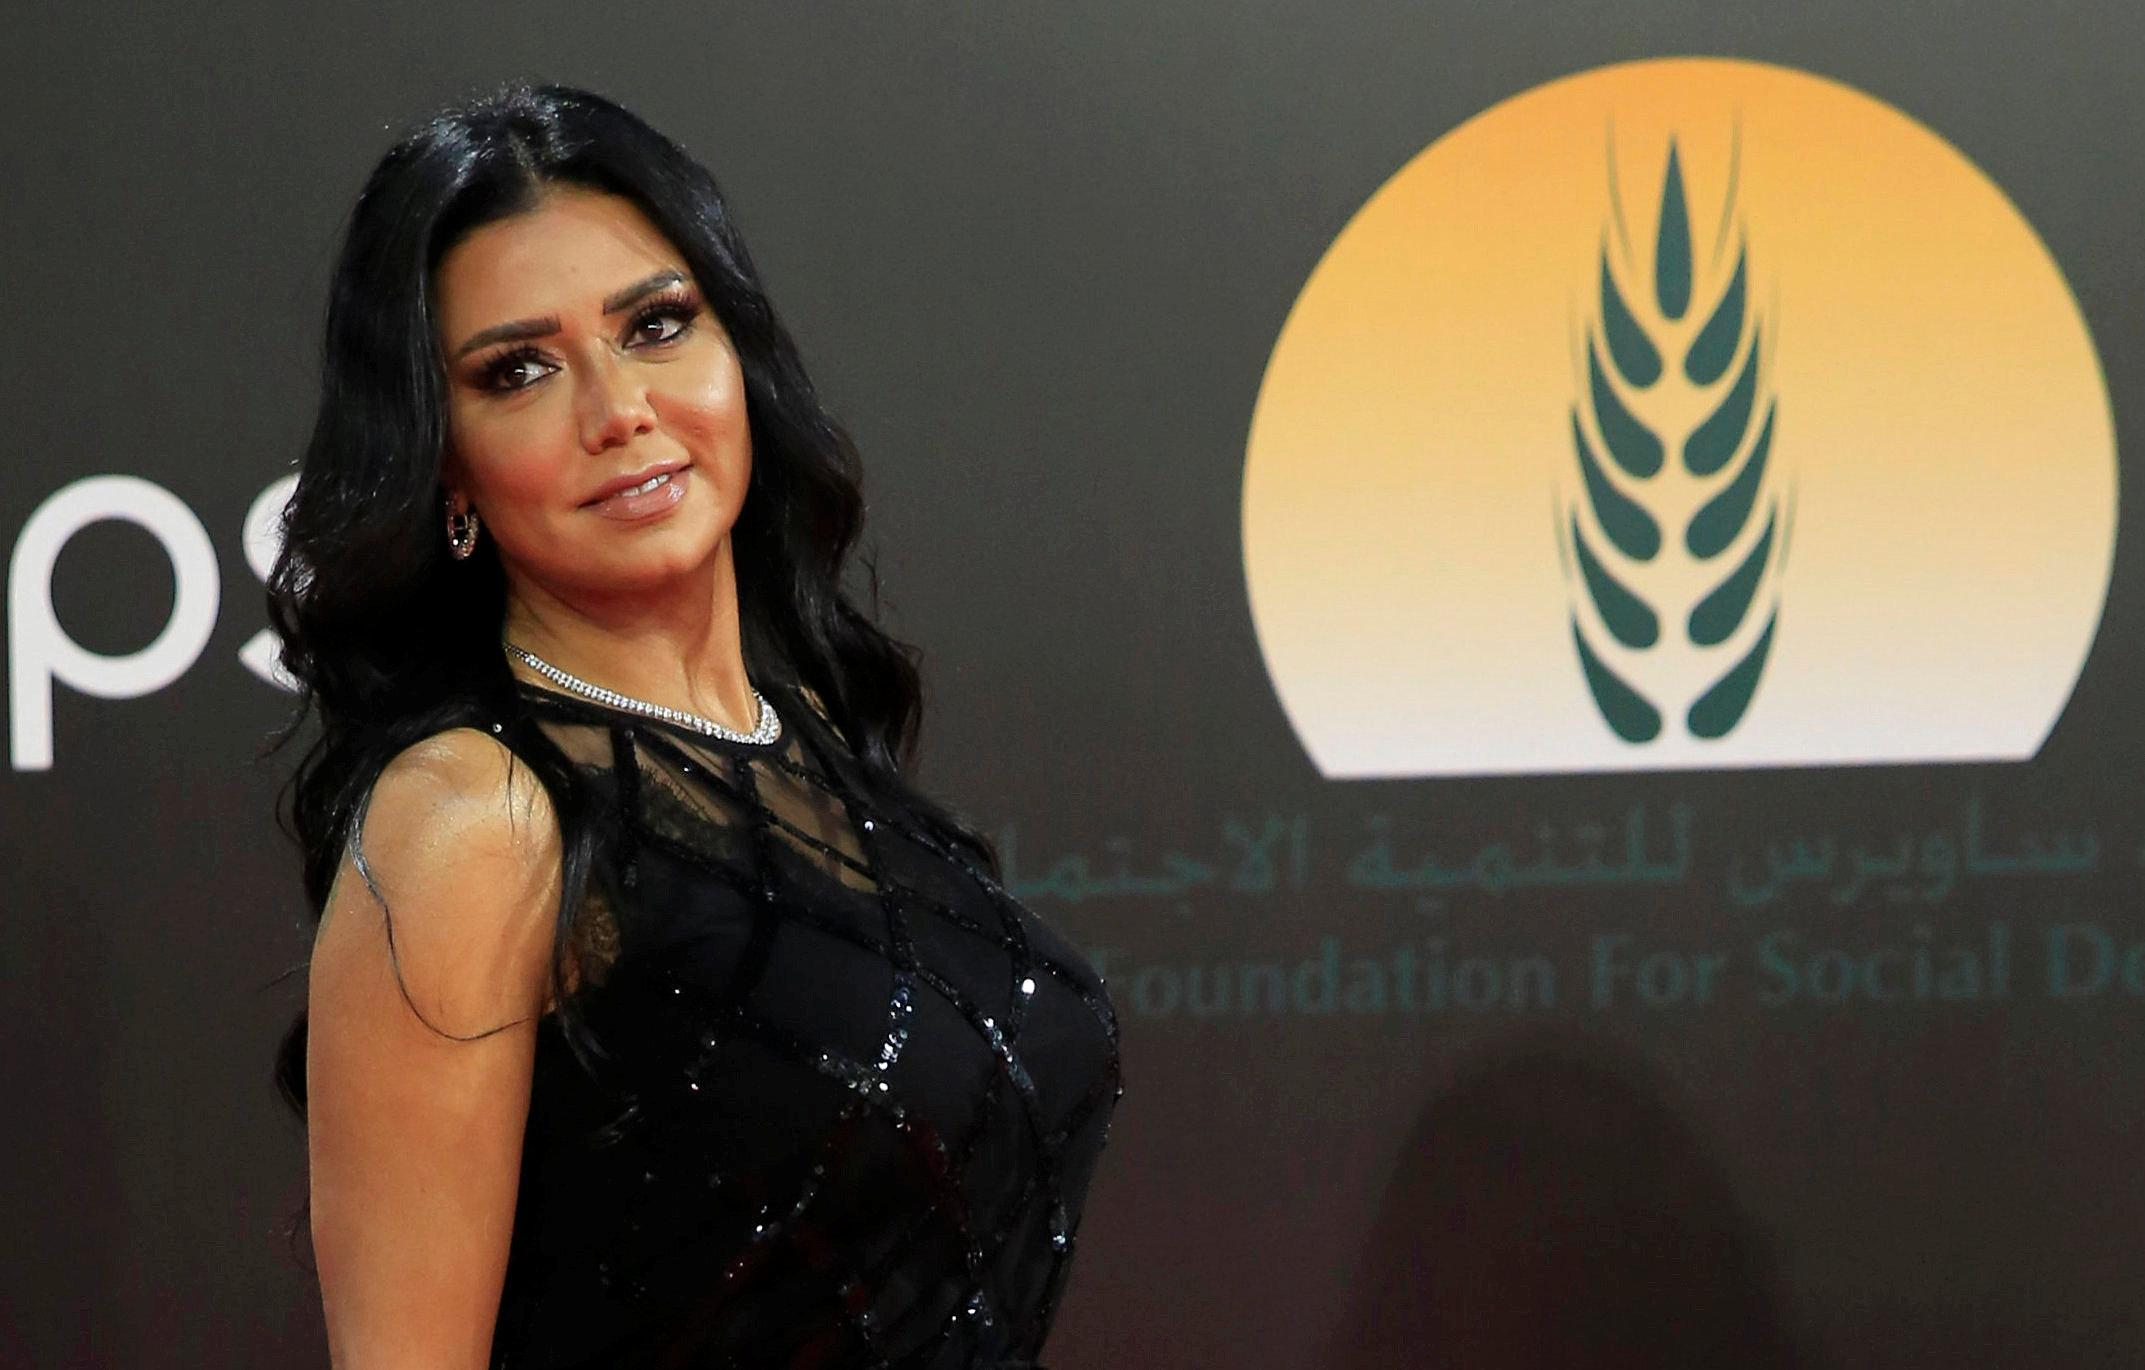 Egyptian actor Rania Youssef charged with public obscenity after wearing 'revealing' dress at film festival